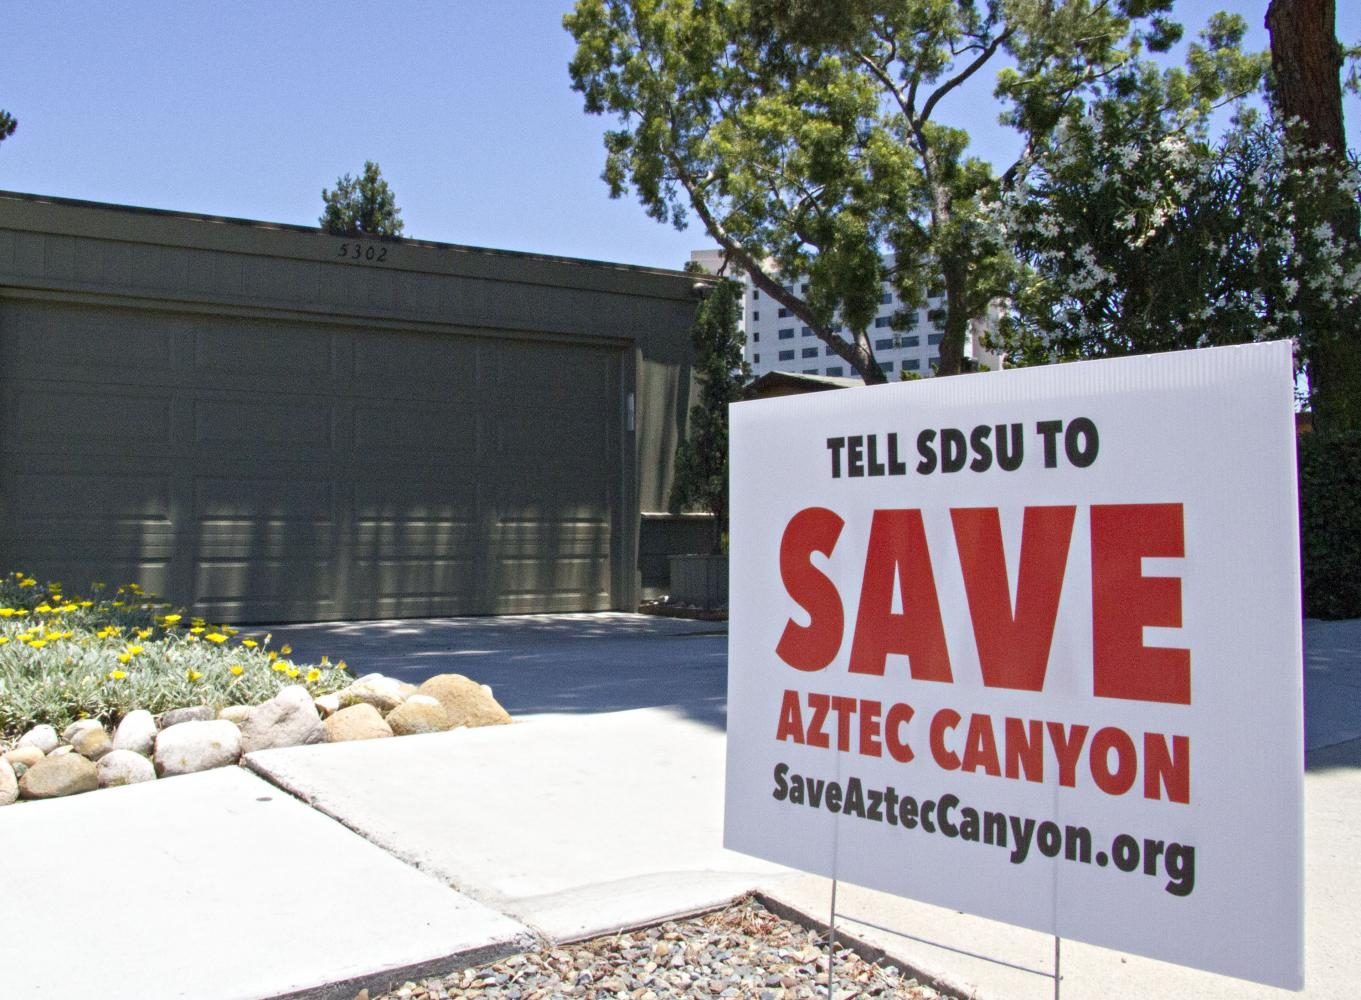 Yard+signs+pepper+the+College+View+Estates+community+drawing+attention+to+what+residents+claim+is+a+threat+to+the+canyon.